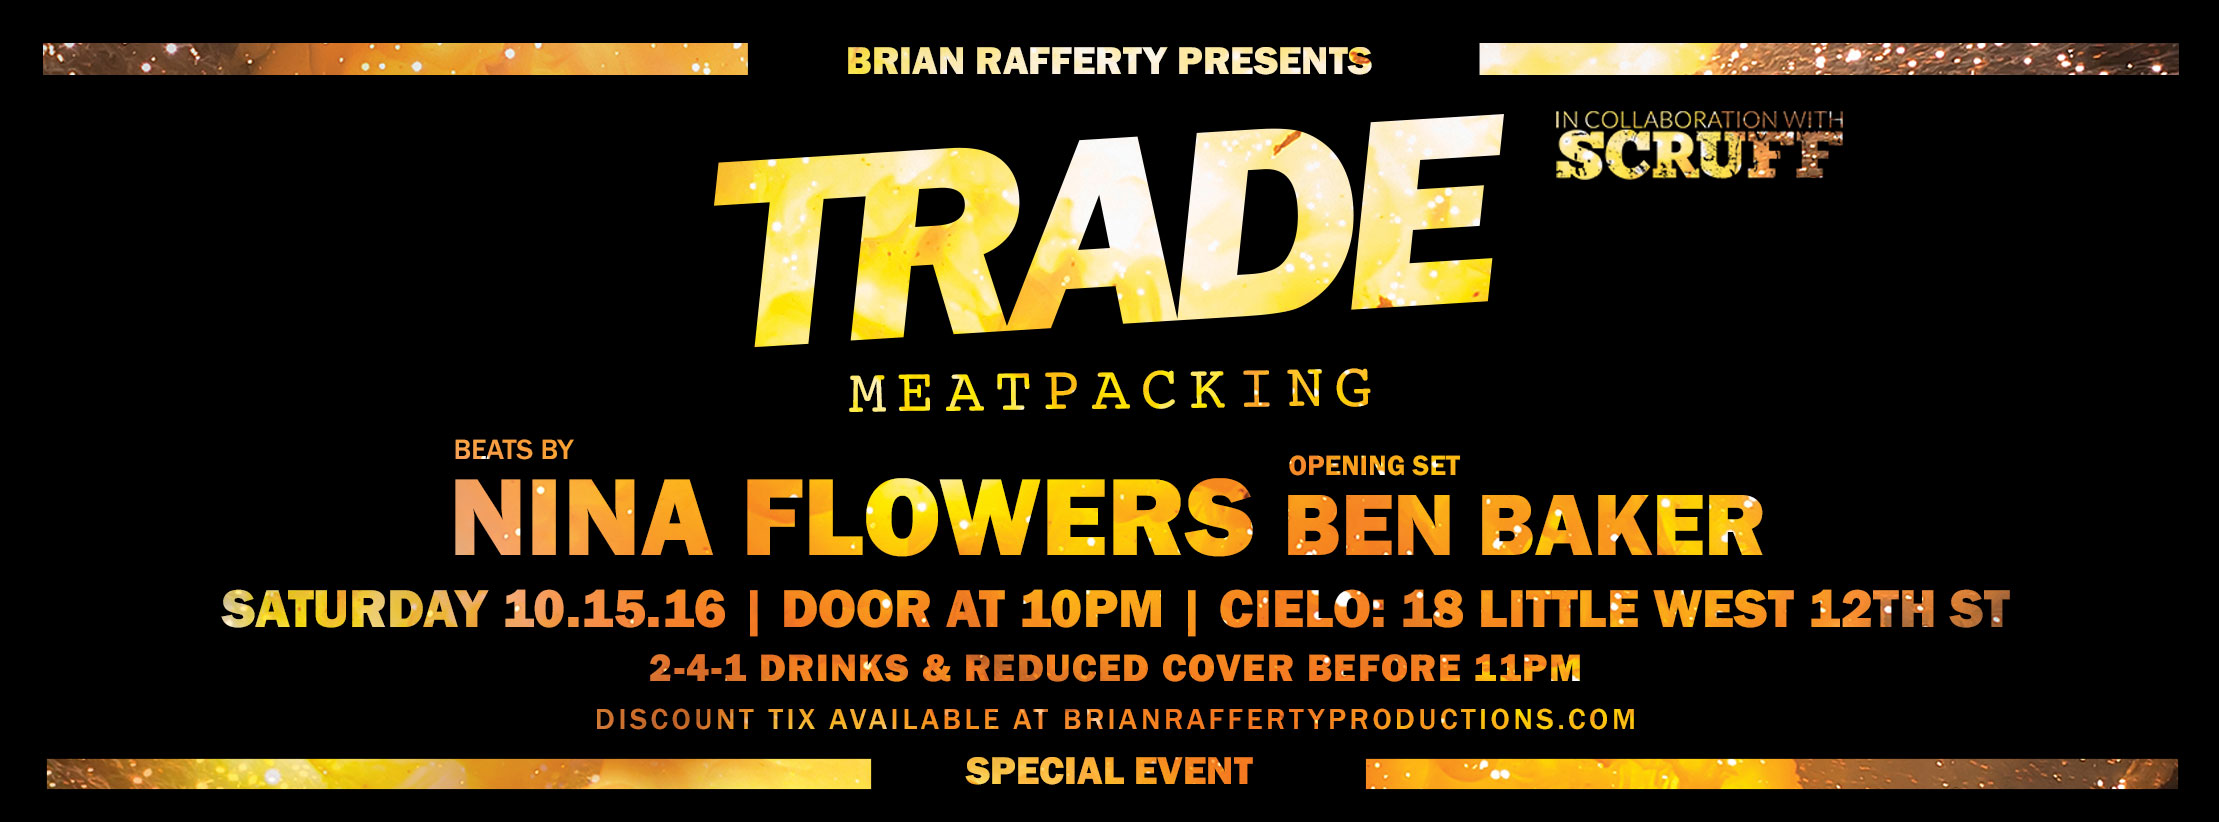 Tickets for TRADE MEATPACKING wDJs NINA FLOWERS + BEN BAKER in New York from ShowClix